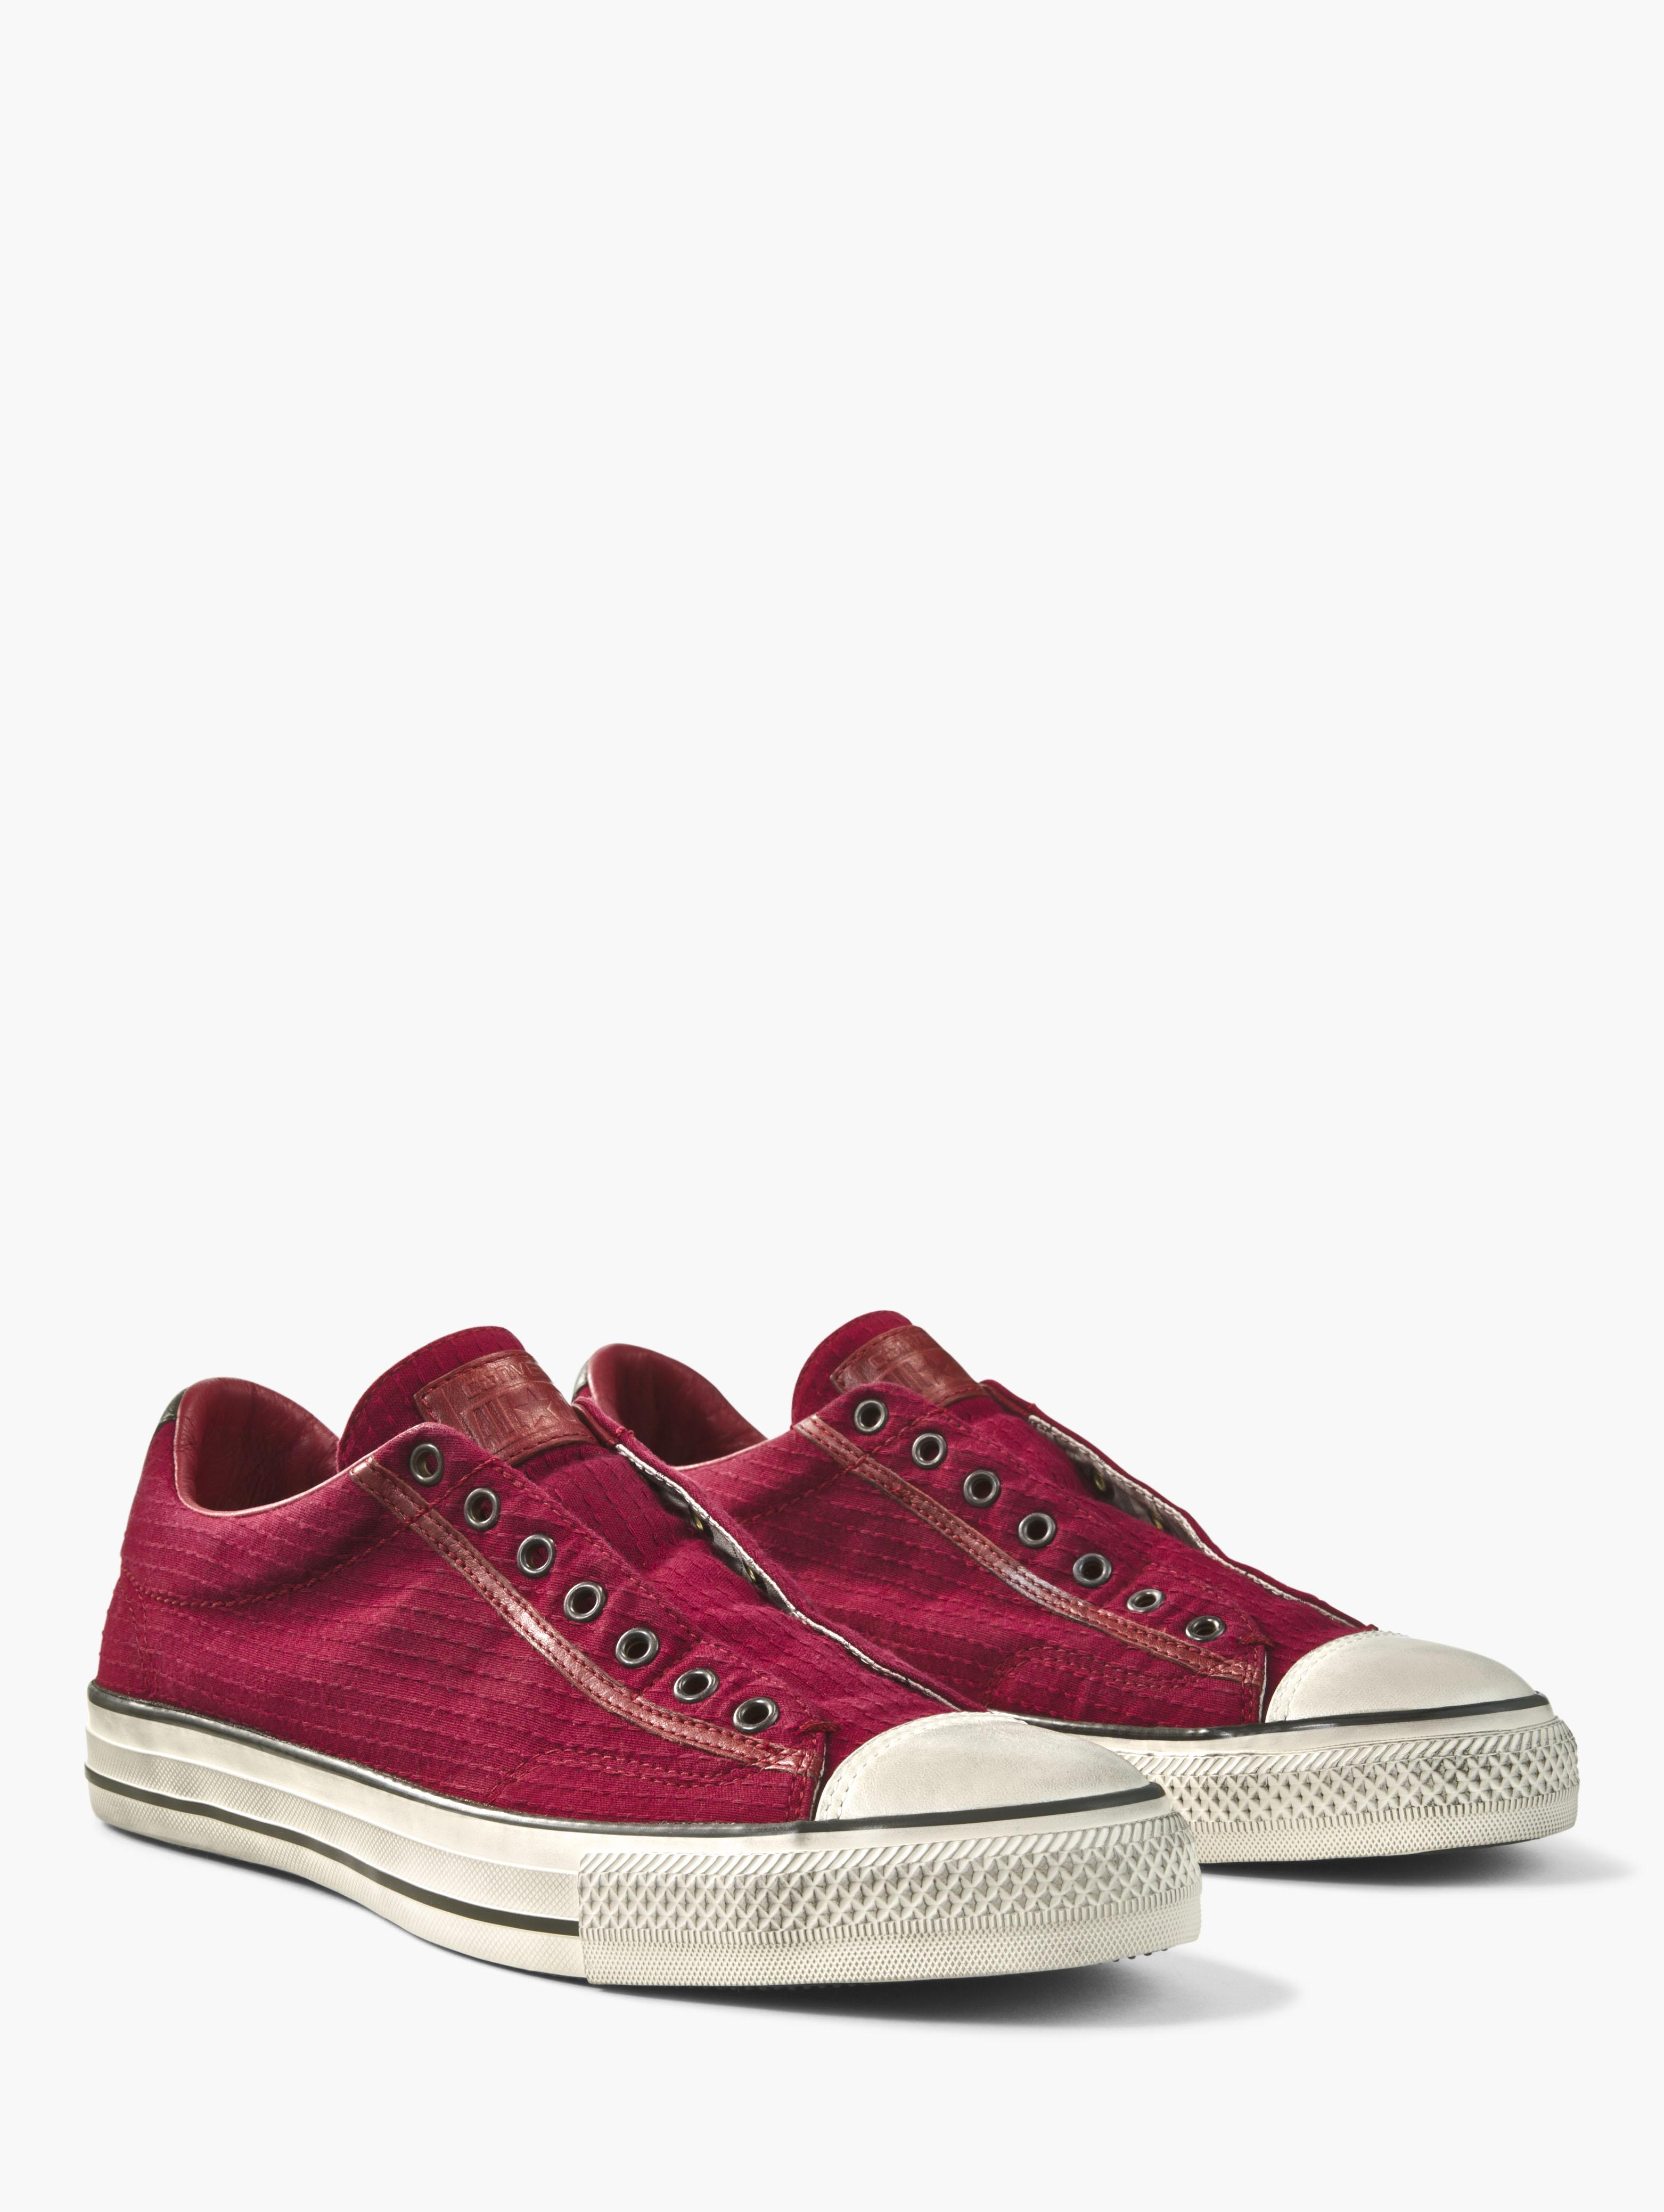 Seersucker Chuck Taylor Slip On